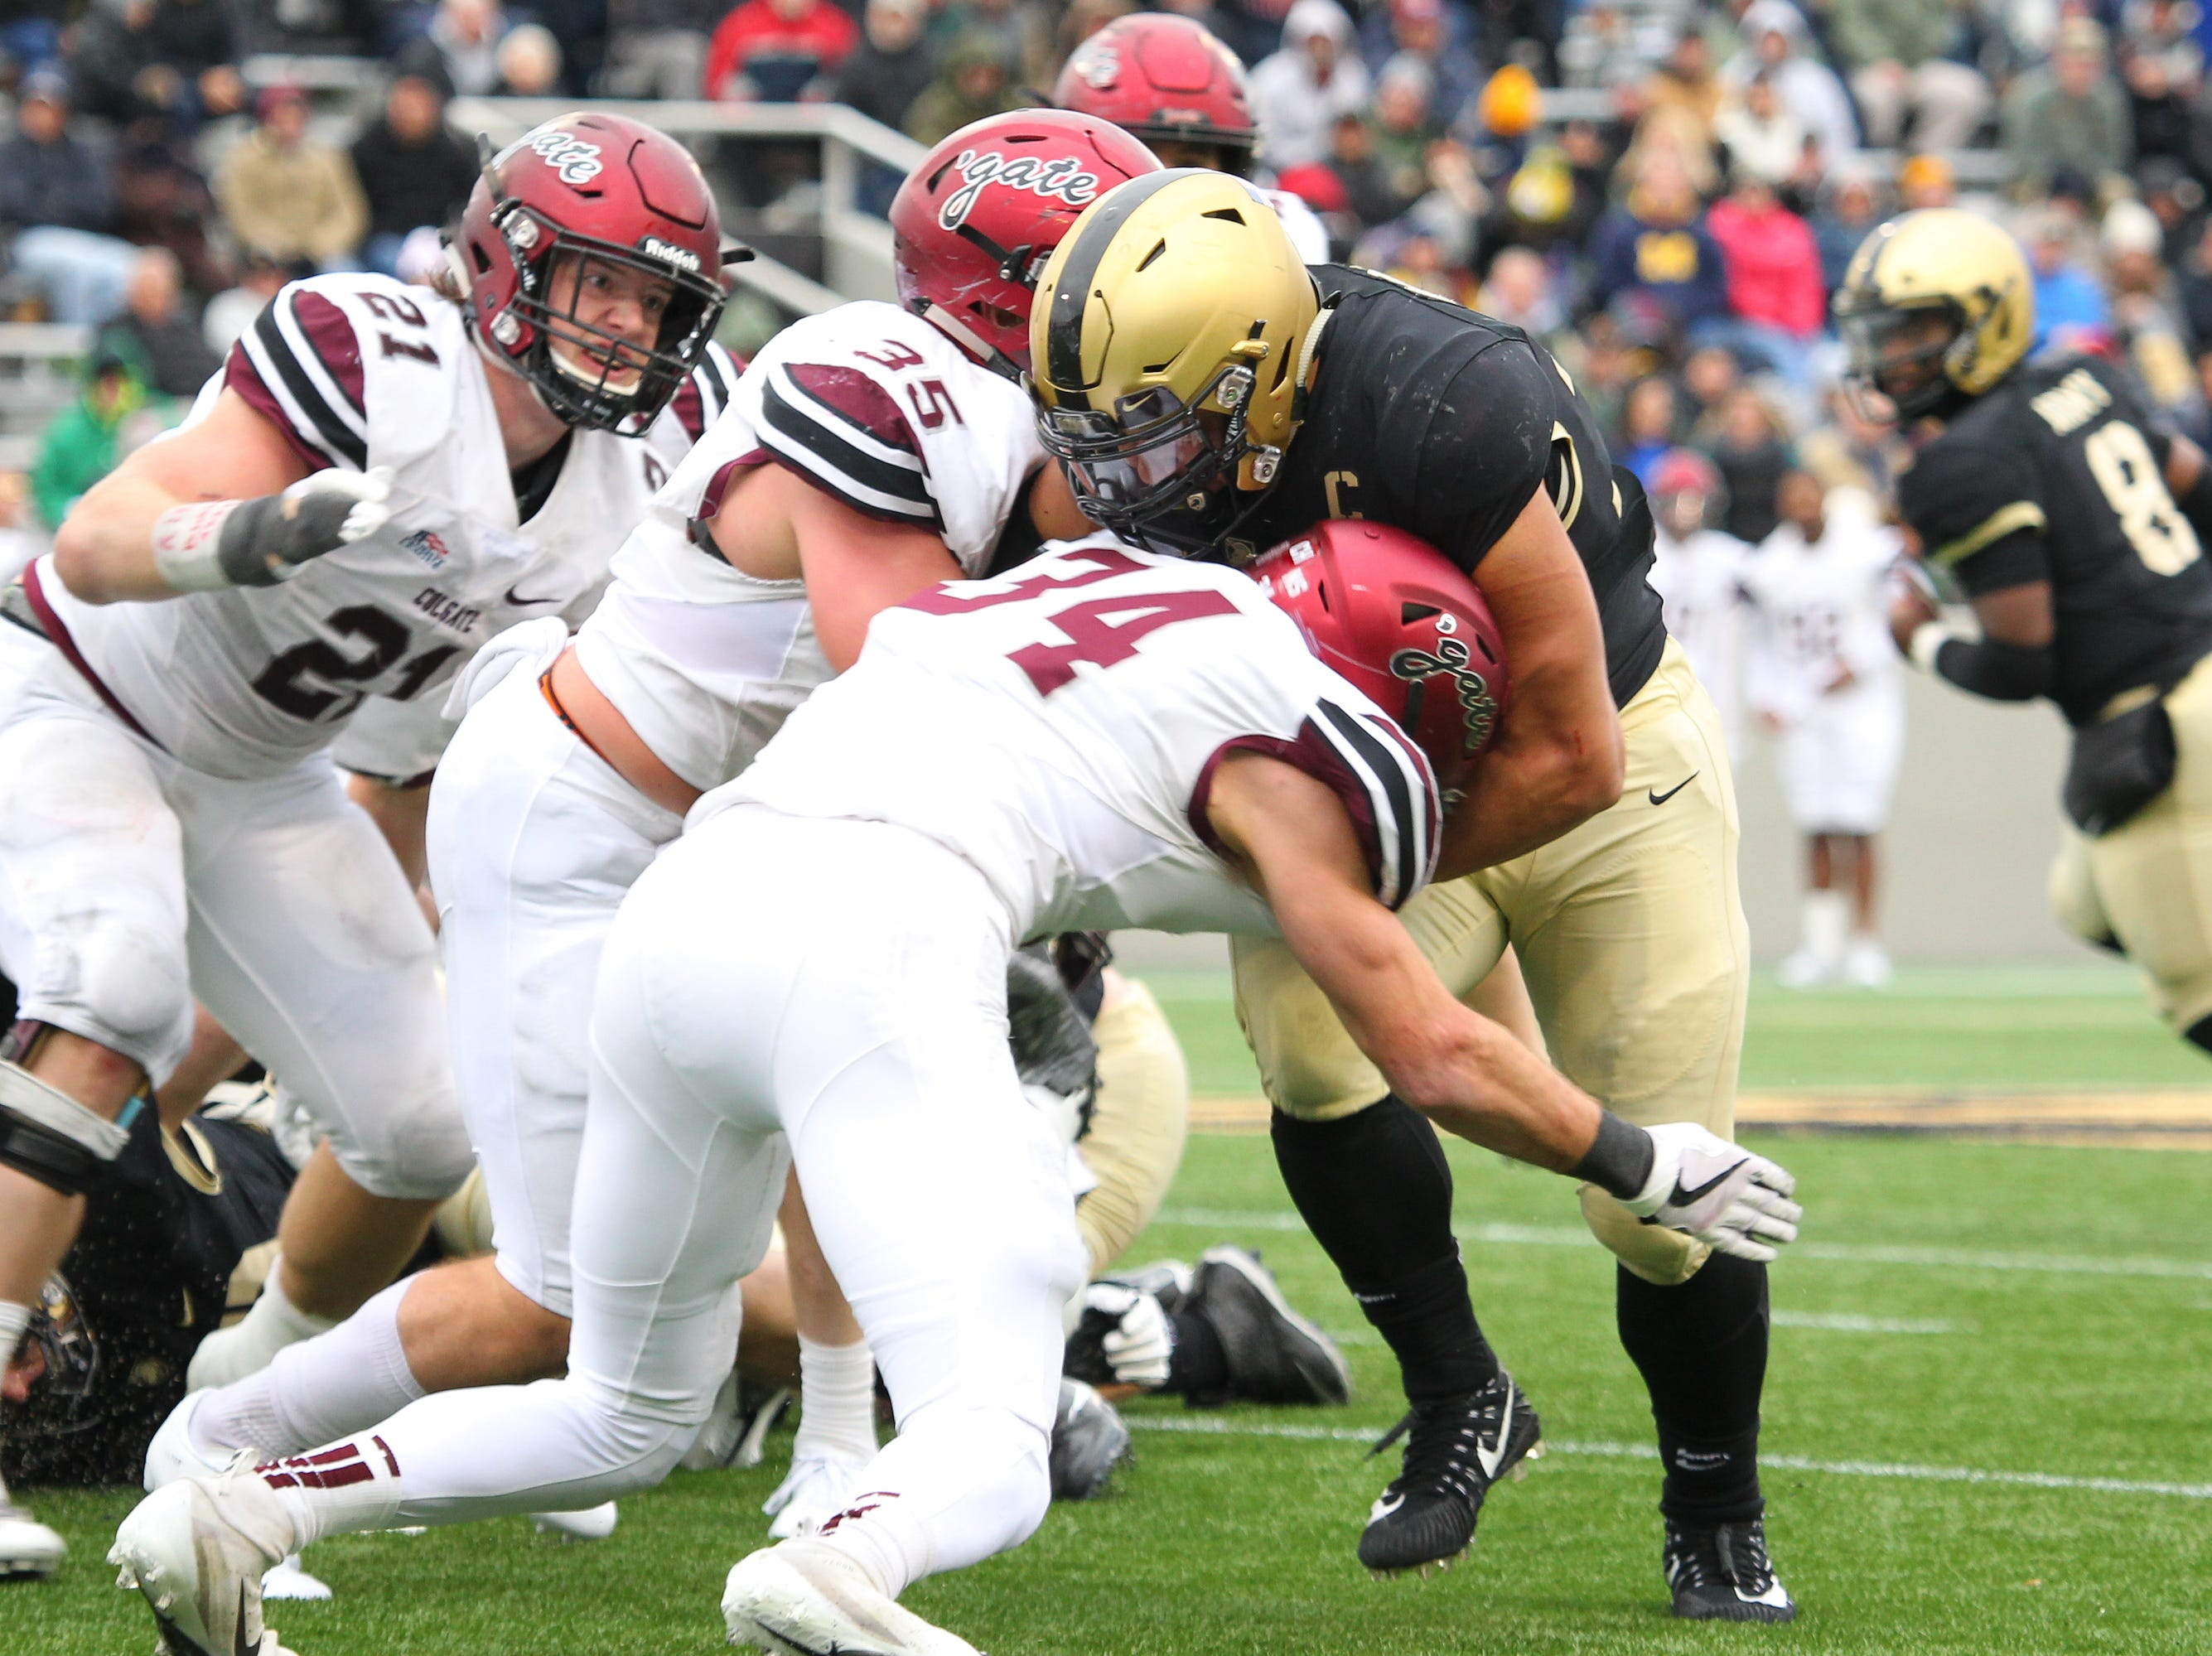 Host Army defeated Colgate, 28-14 on Nov. 17. Maine-Endwell grad Darnell Woolfolk (No. 33) finished with three touchdowns for Army. Fellow Maine-Endwell grad Alec Wisniewski (No. 34) is a starting defensive back for Colgate.